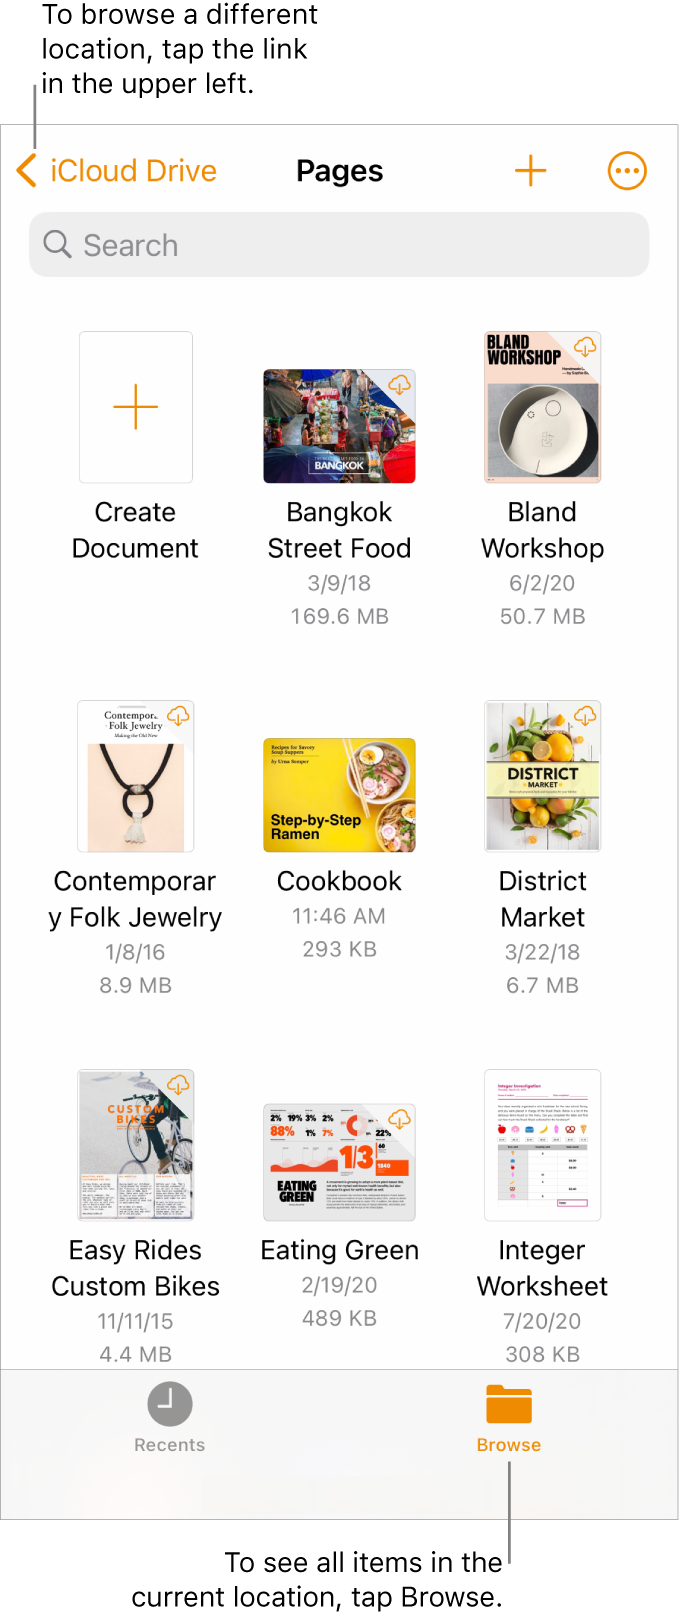 The browse view of the document manager with a location link in the top-left corner and below it a Search field. In the top-right corner are the Add a Document button and the More button. At the bottom of the screen are a Recents button and Browse button.